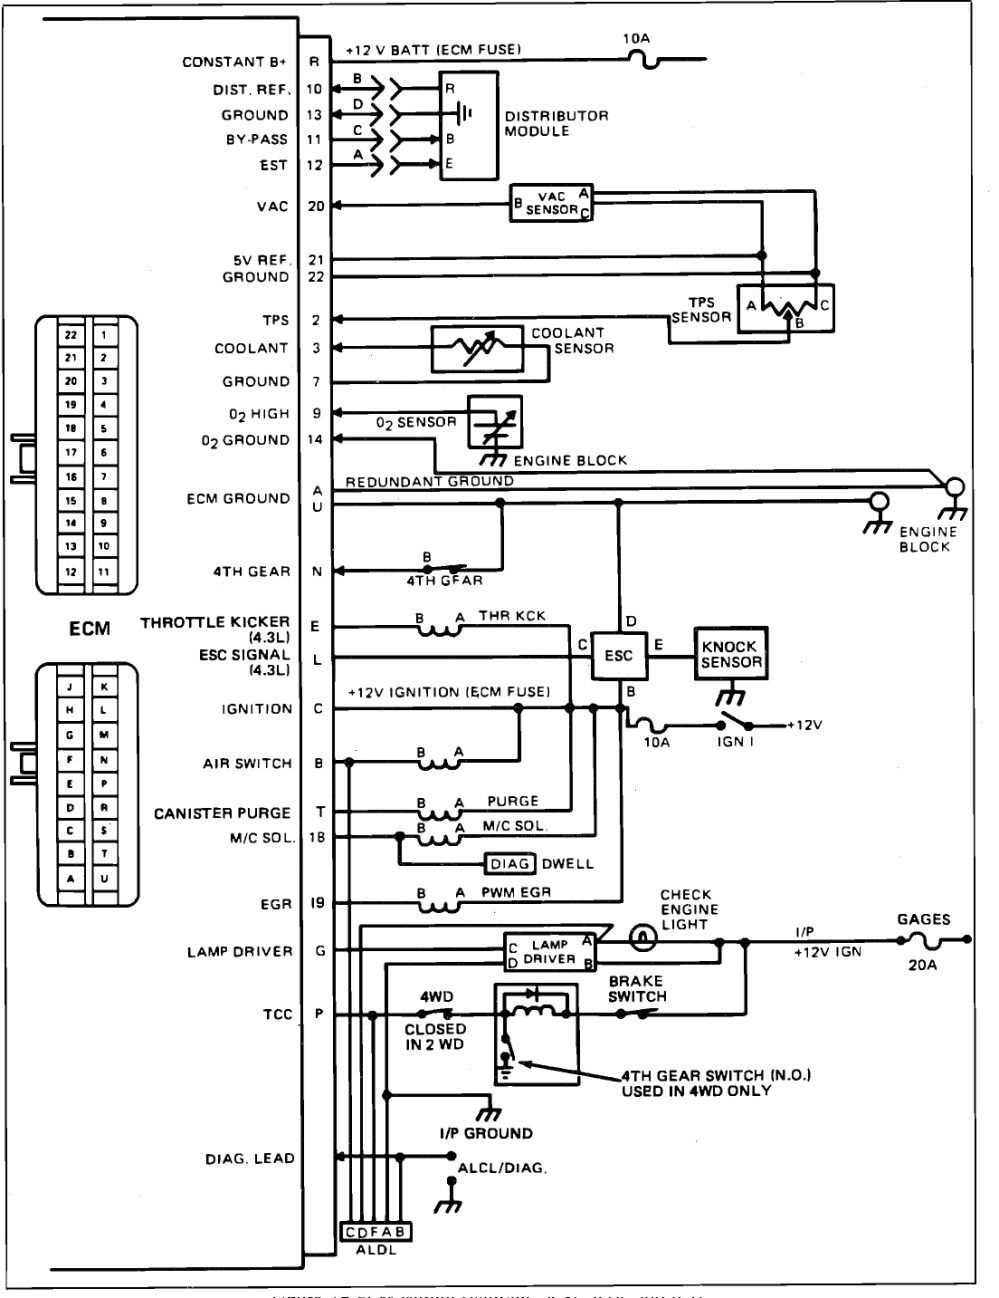 medium resolution of 1995 chevy tahoe engine wiring diagram schema wiring diagramwiring color diagram also vacuum line diagram for